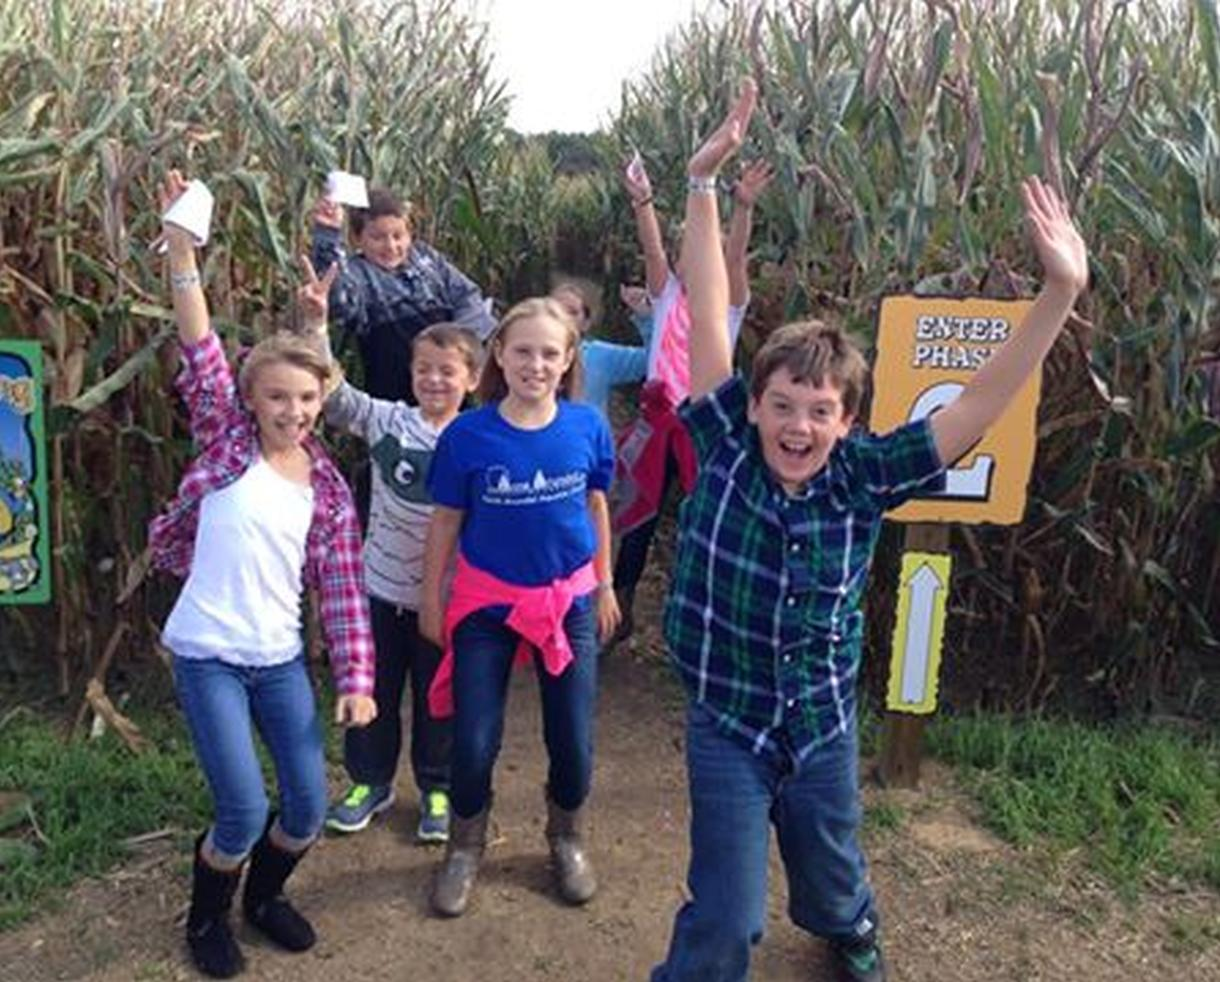 Photo by Maryland Corn Maze